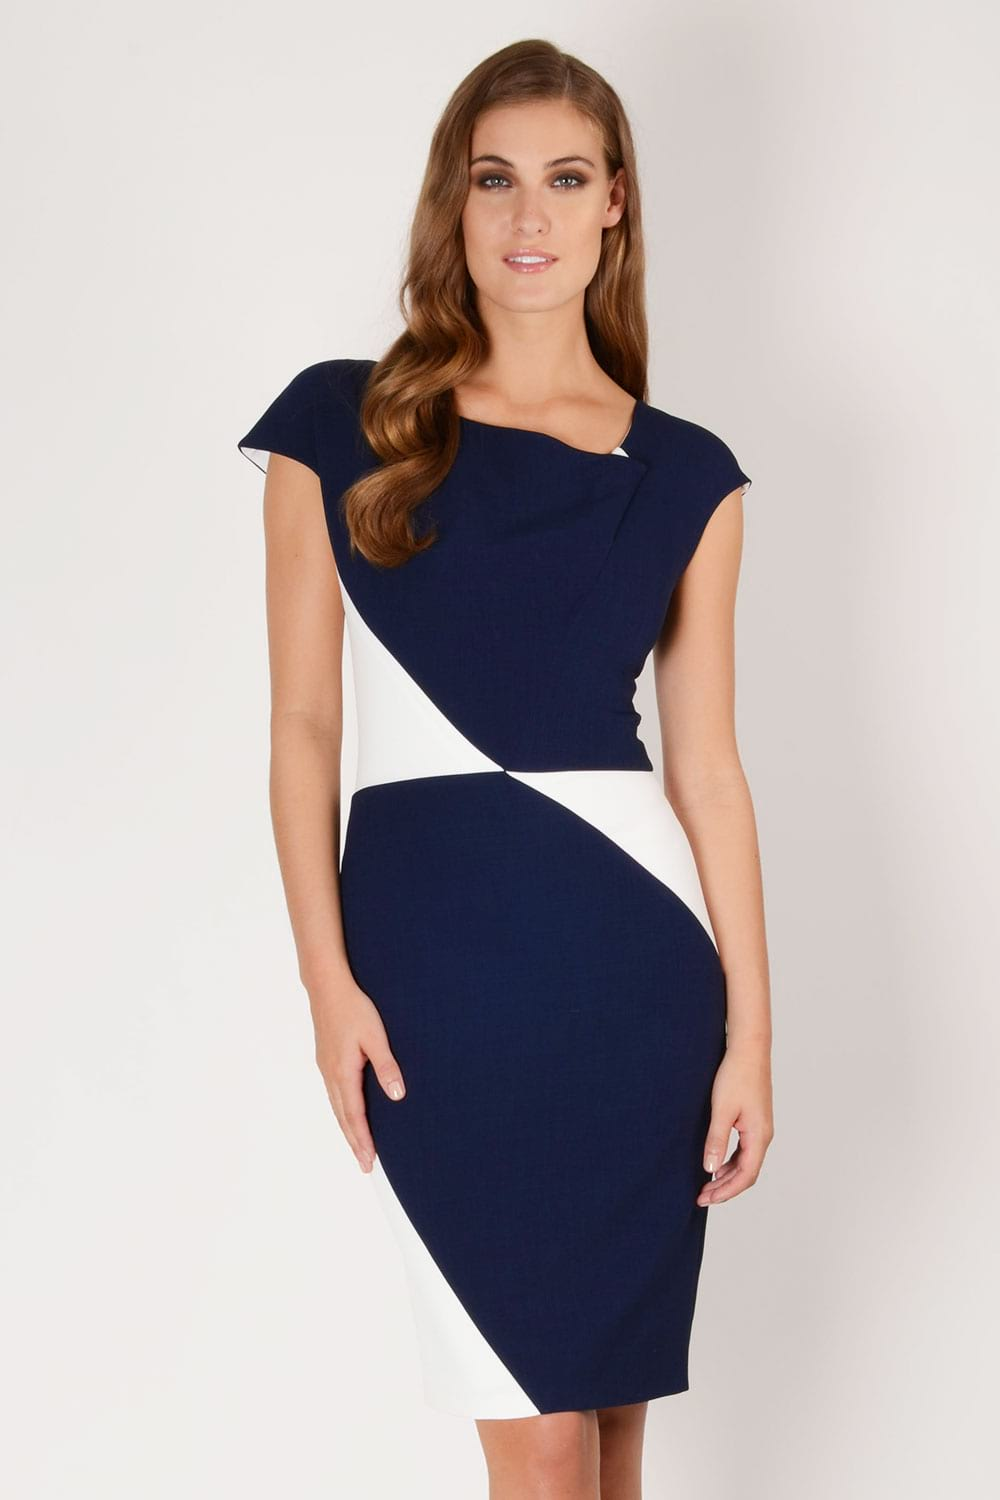 Hybrid Fashion 1256 Windsor Contrast Pencil Dress